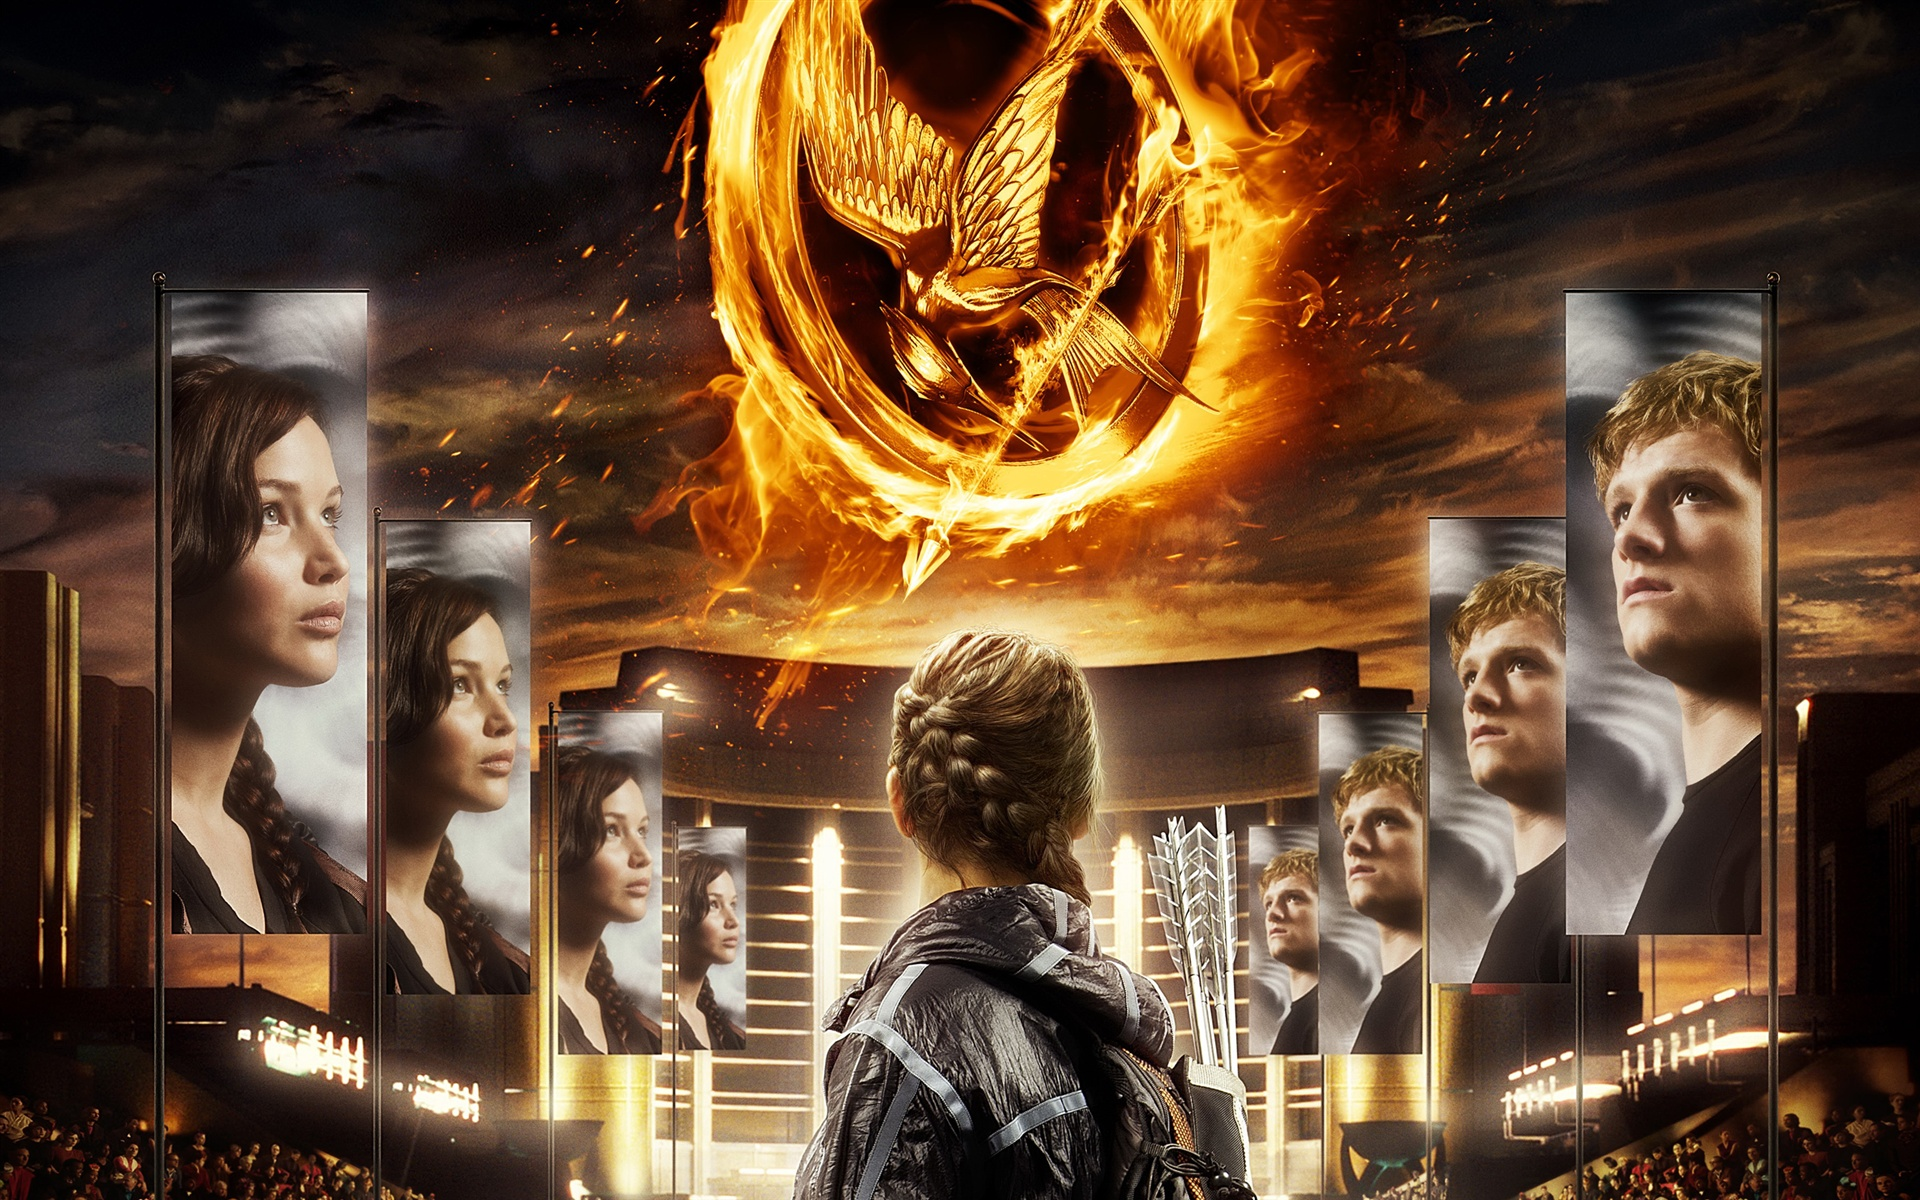 The Hunger Games 2012 wallpaper - 1920x1200